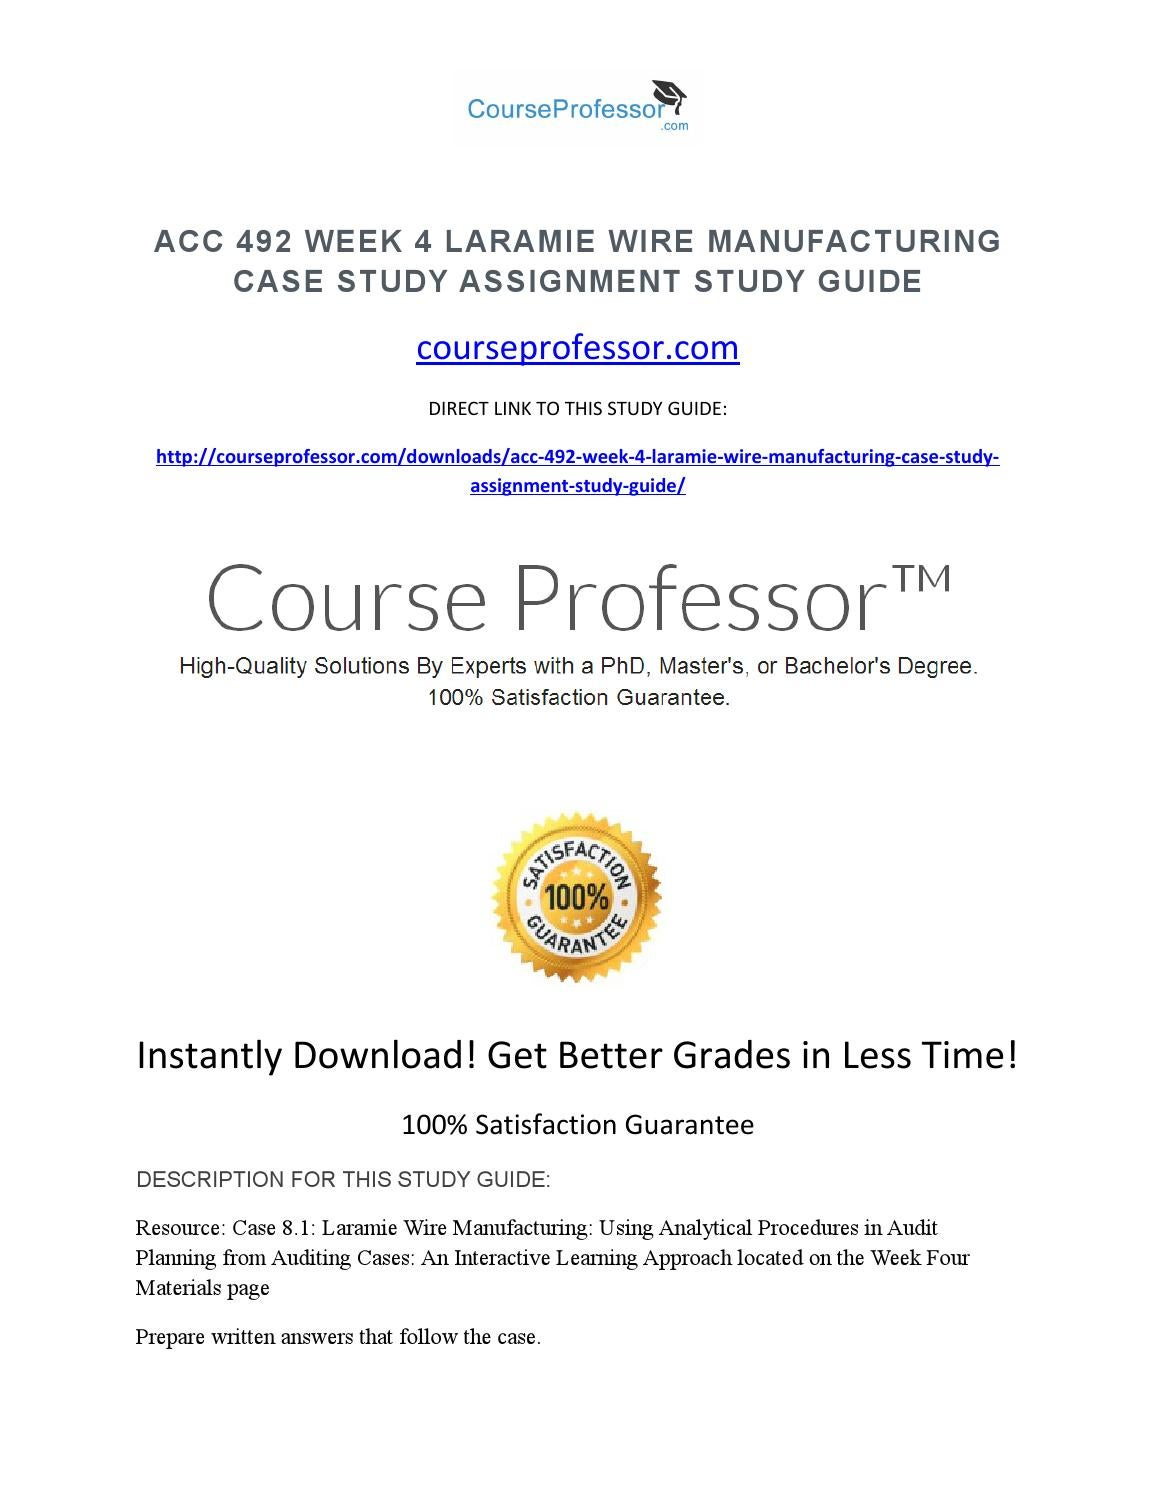 case 8 1 laramie wire manufacturing Resource: case 81: laramie wire manufacturing: using analytical procedures in audit planning from auditing cases: an interactive learning approach located on the week four materials page prepare.